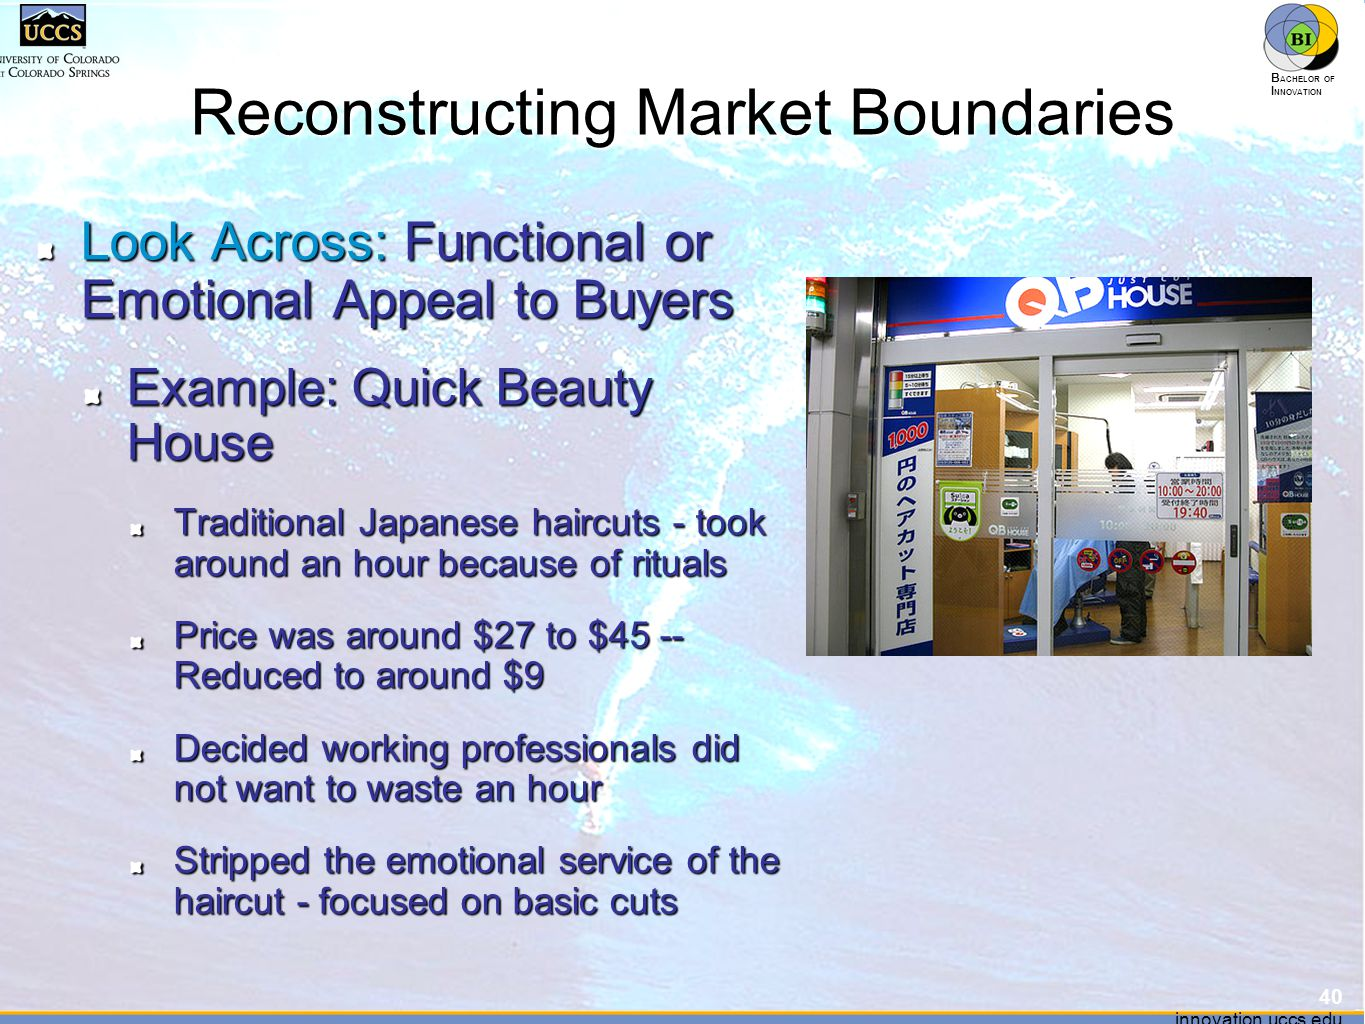 innovation.uccs.edu B ACHELOR OF I NNOVATION ™ innovation.uccs.edu B ACHELOR OF I NNOVATION ™ Reconstructing Market Boundaries Look Across: Functional or Emotional Appeal to Buyers Example: Quick Beauty House Traditional Japanese haircuts - took around an hour because of rituals Price was around $27 to $45 -- Reduced to around $9 Decided working professionals did not want to waste an hour Stripped the emotional service of the haircut - focused on basic cuts 40